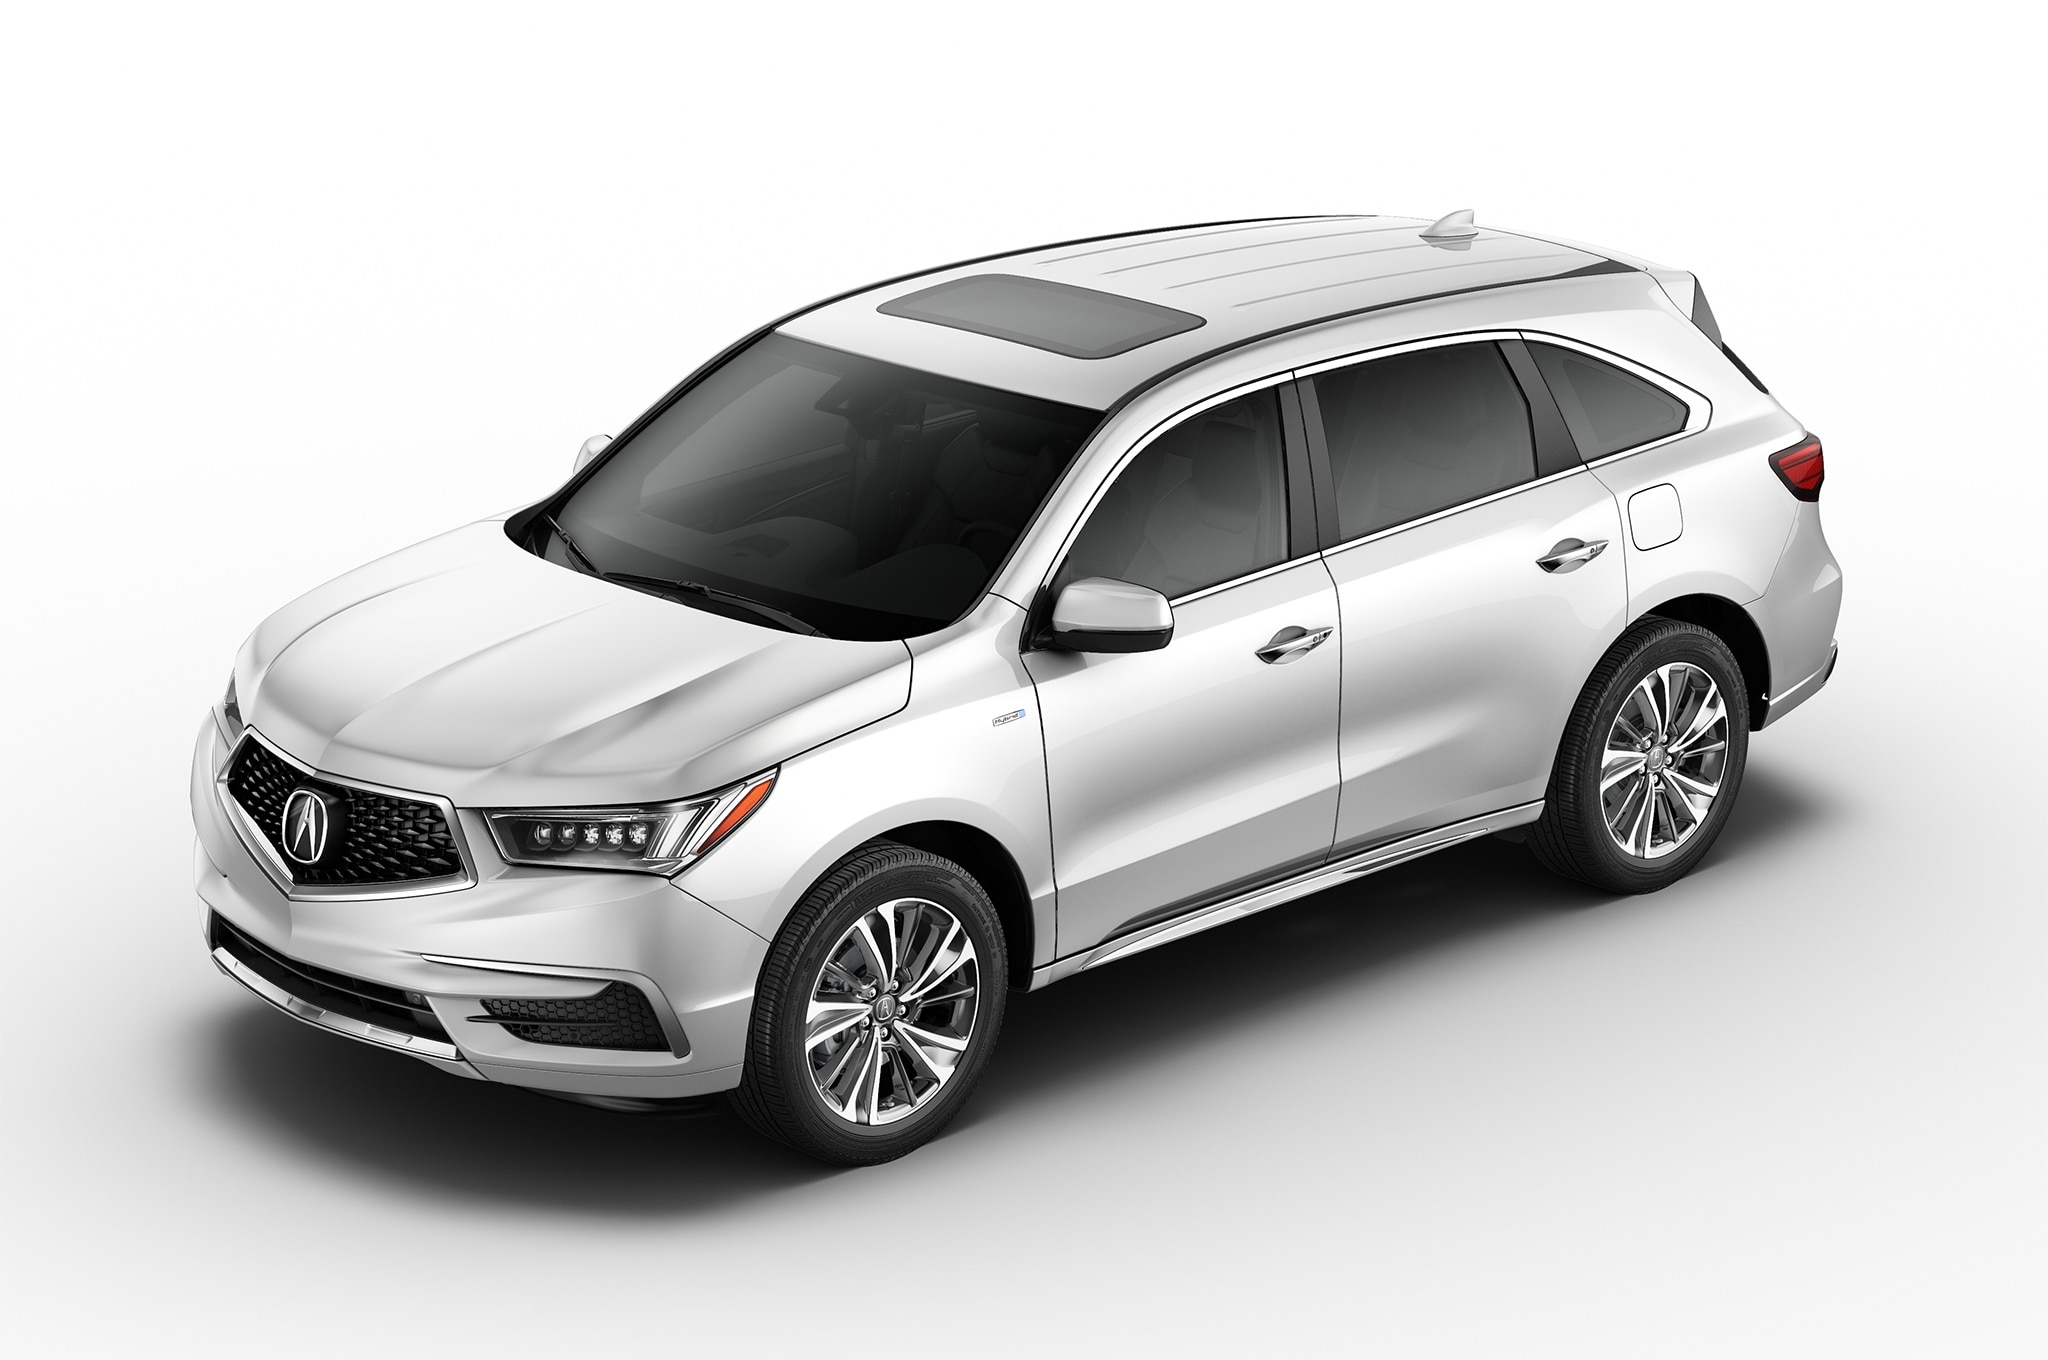 2017 Acura MDX Sport Hybrid Arrives in April, Will Start at $52,935 | Automobile Magazine